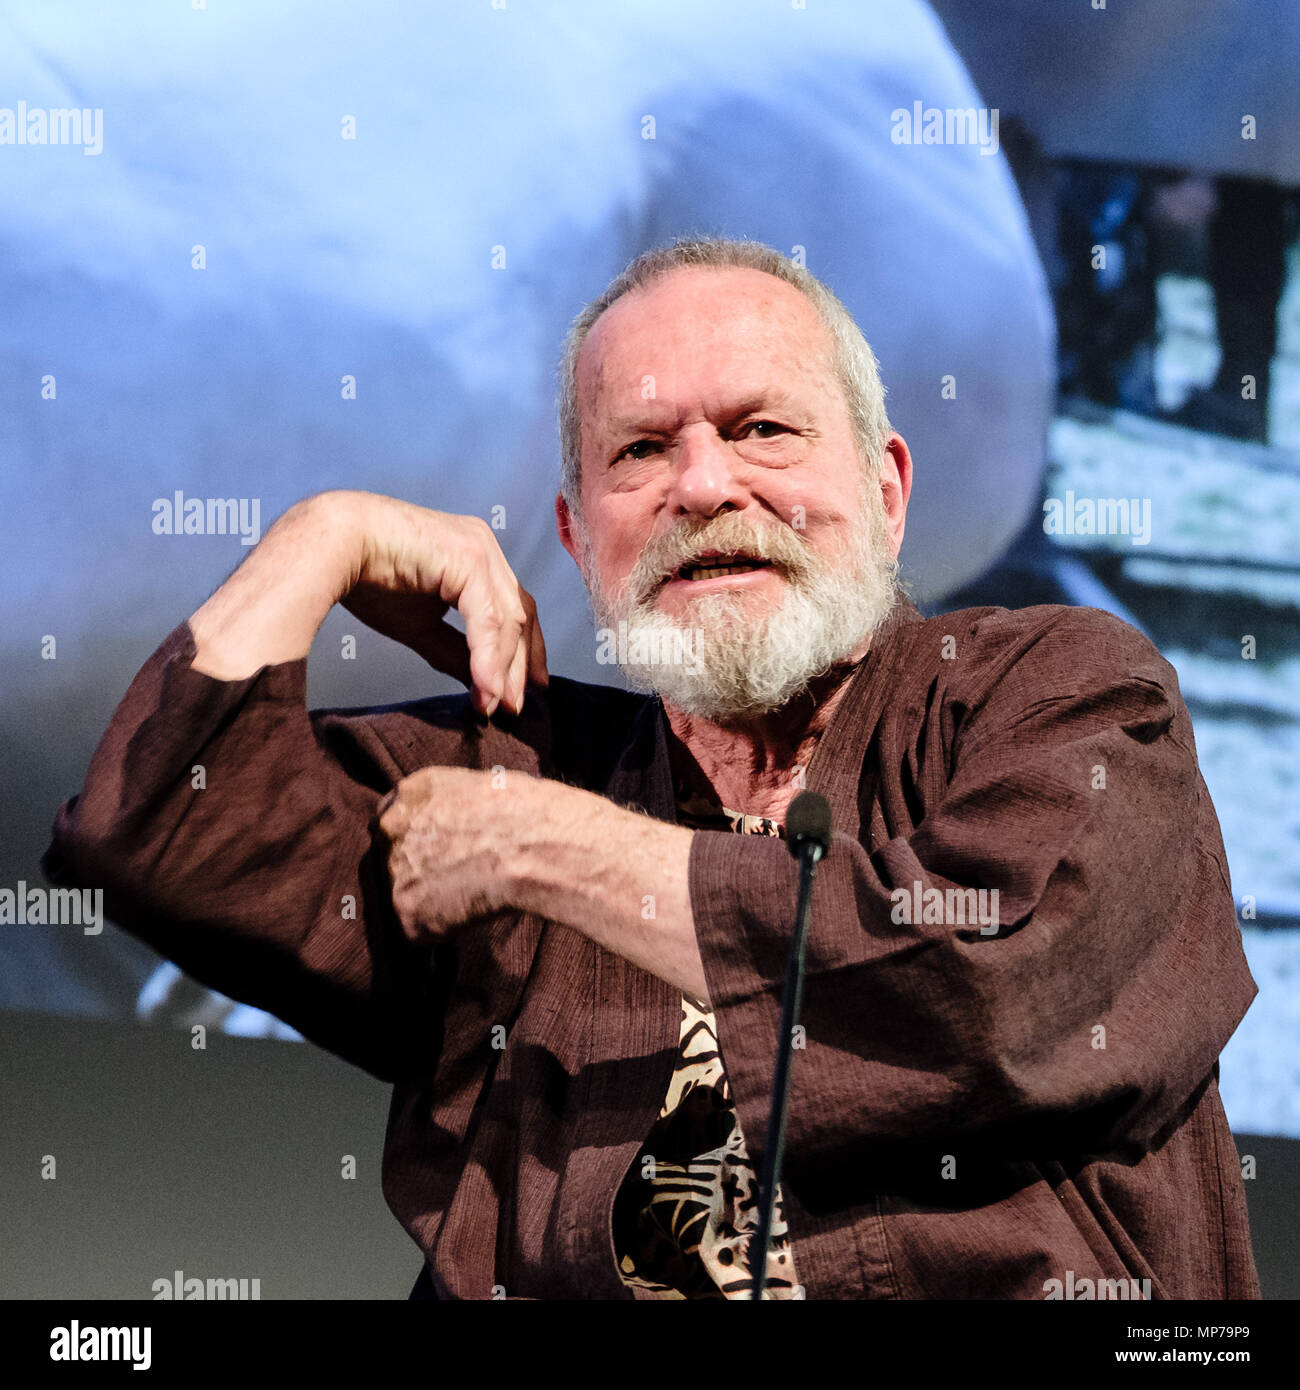 London, UK. 21st May, 2018. Terry Gilliam appears on Mark Kermode Live in 3D on Monday 21 May 2018 held at BFI Southbank, London. Pictured: Terry Gilliam. Credit: Julie Edwards/Alamy Live News - Stock Image